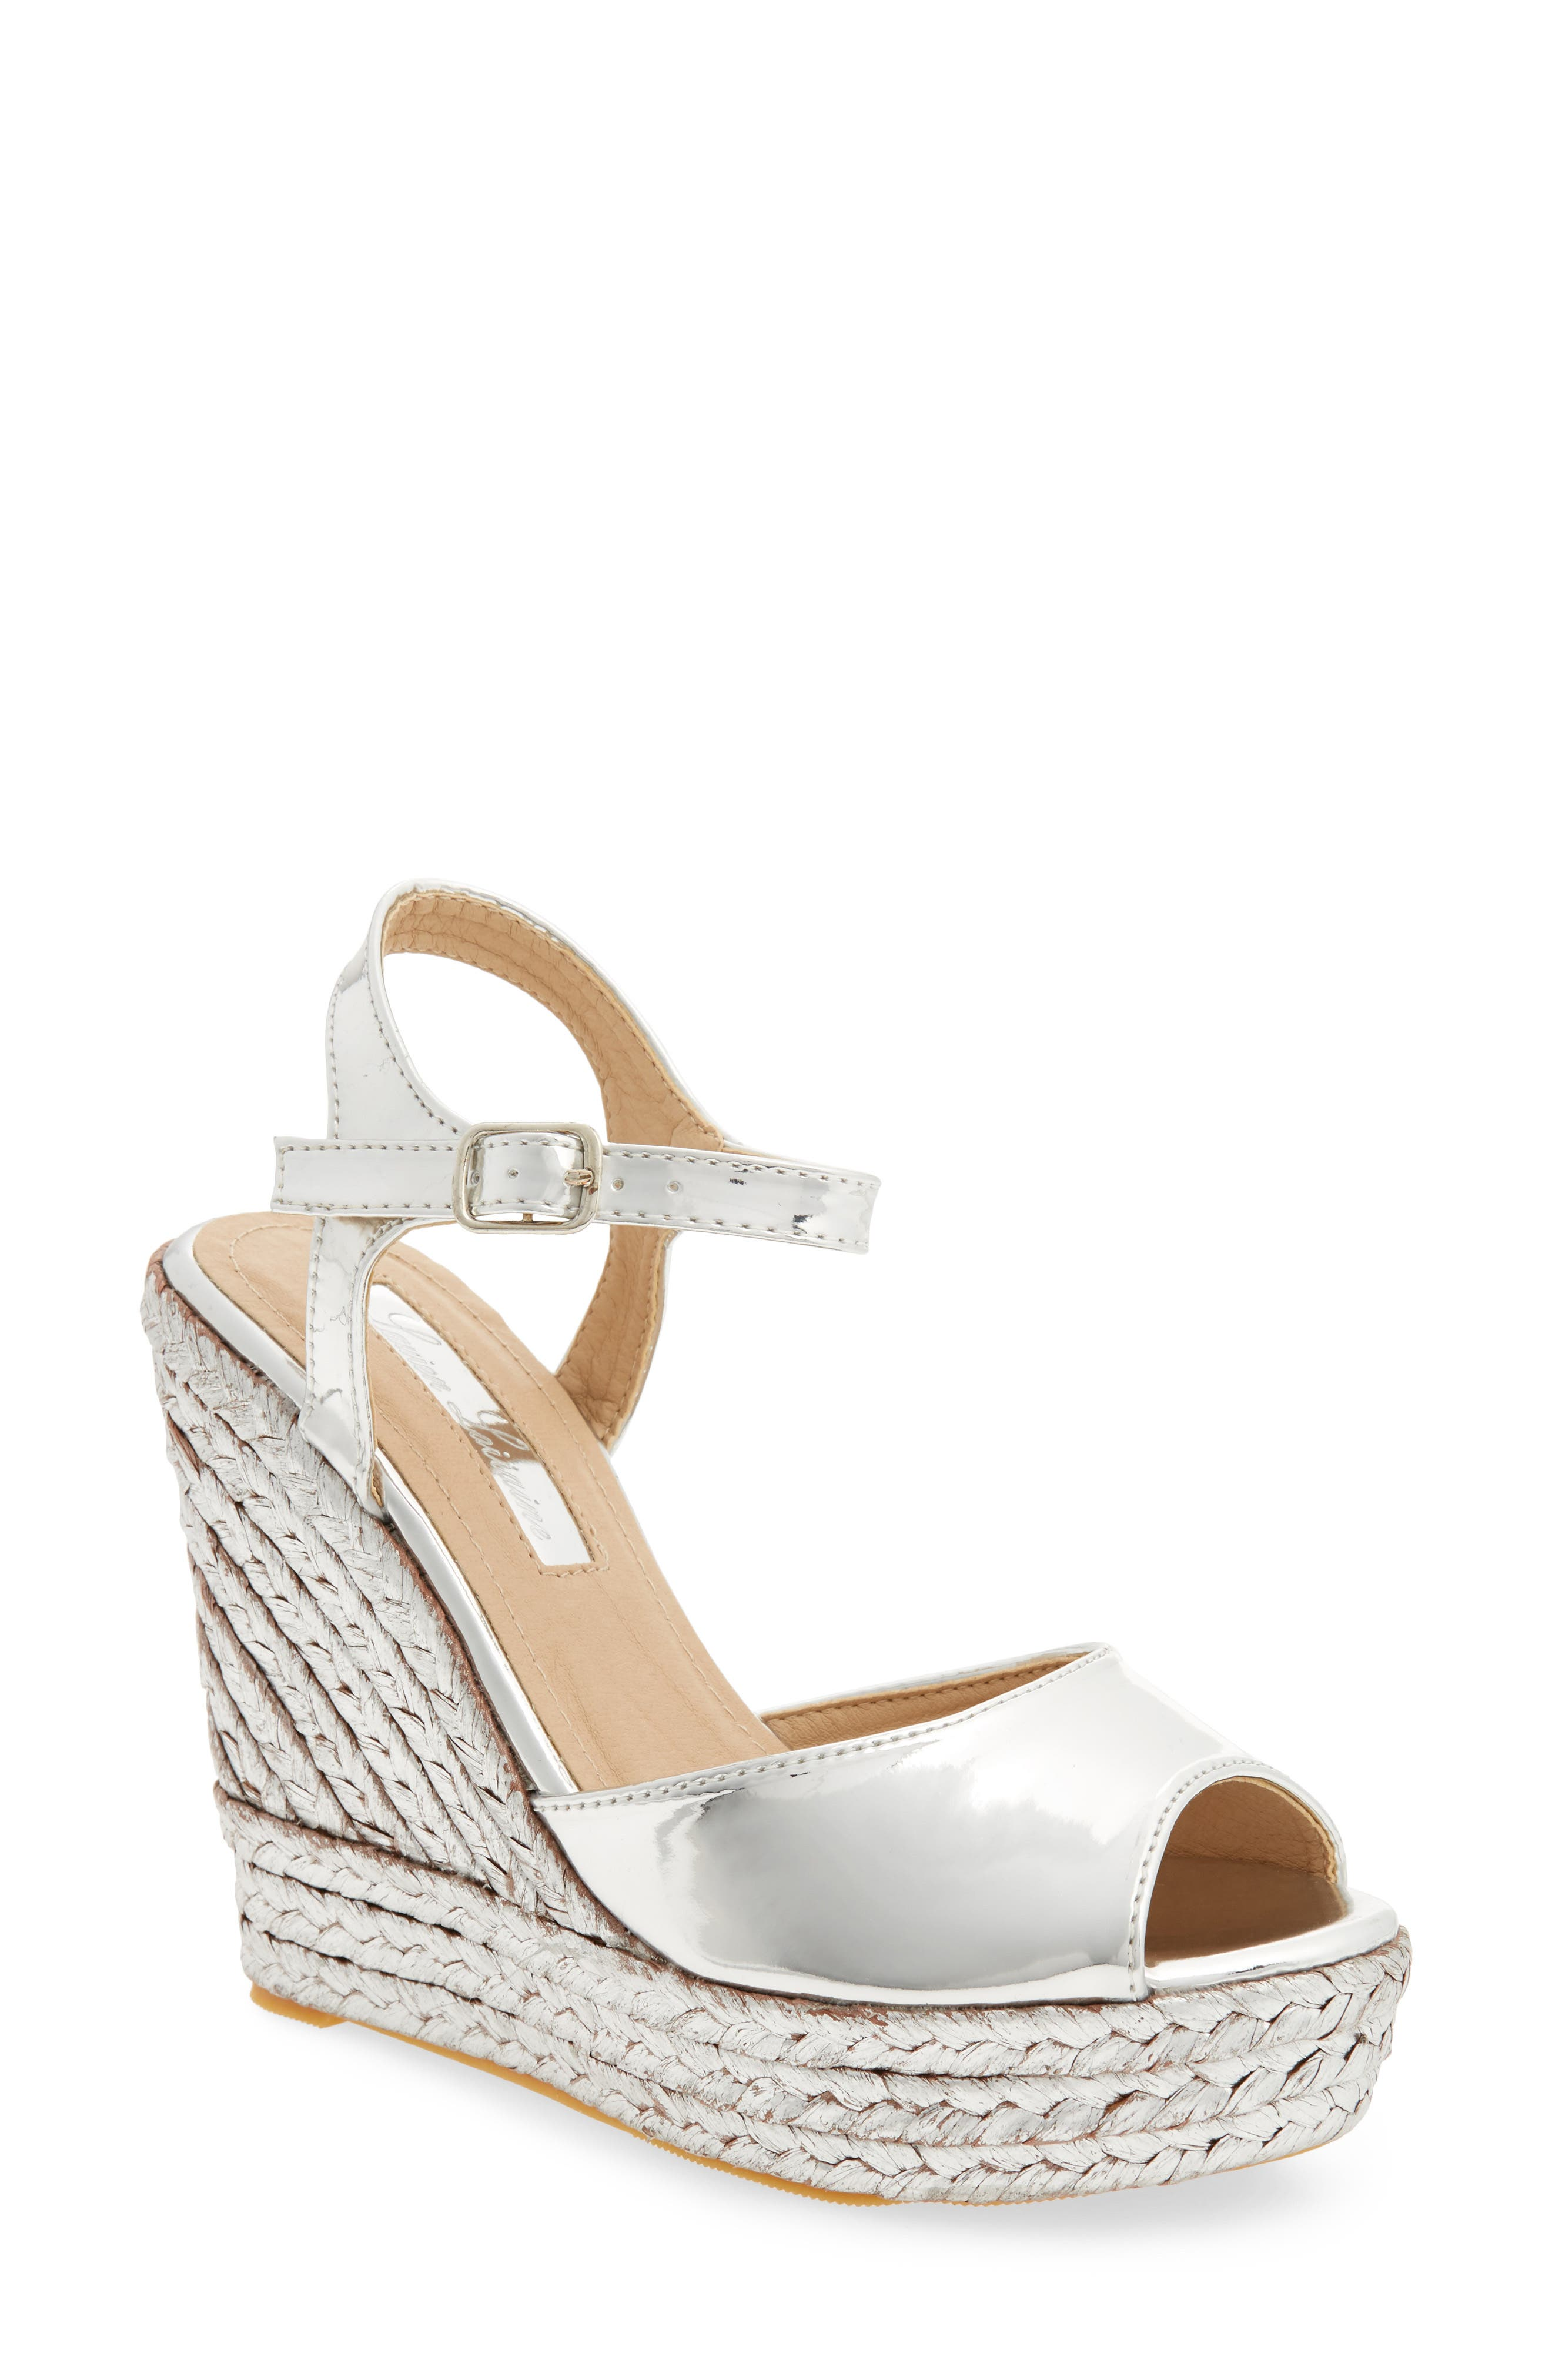 Lina Platform Wedge Sandal,                         Main,                         color, SILVER